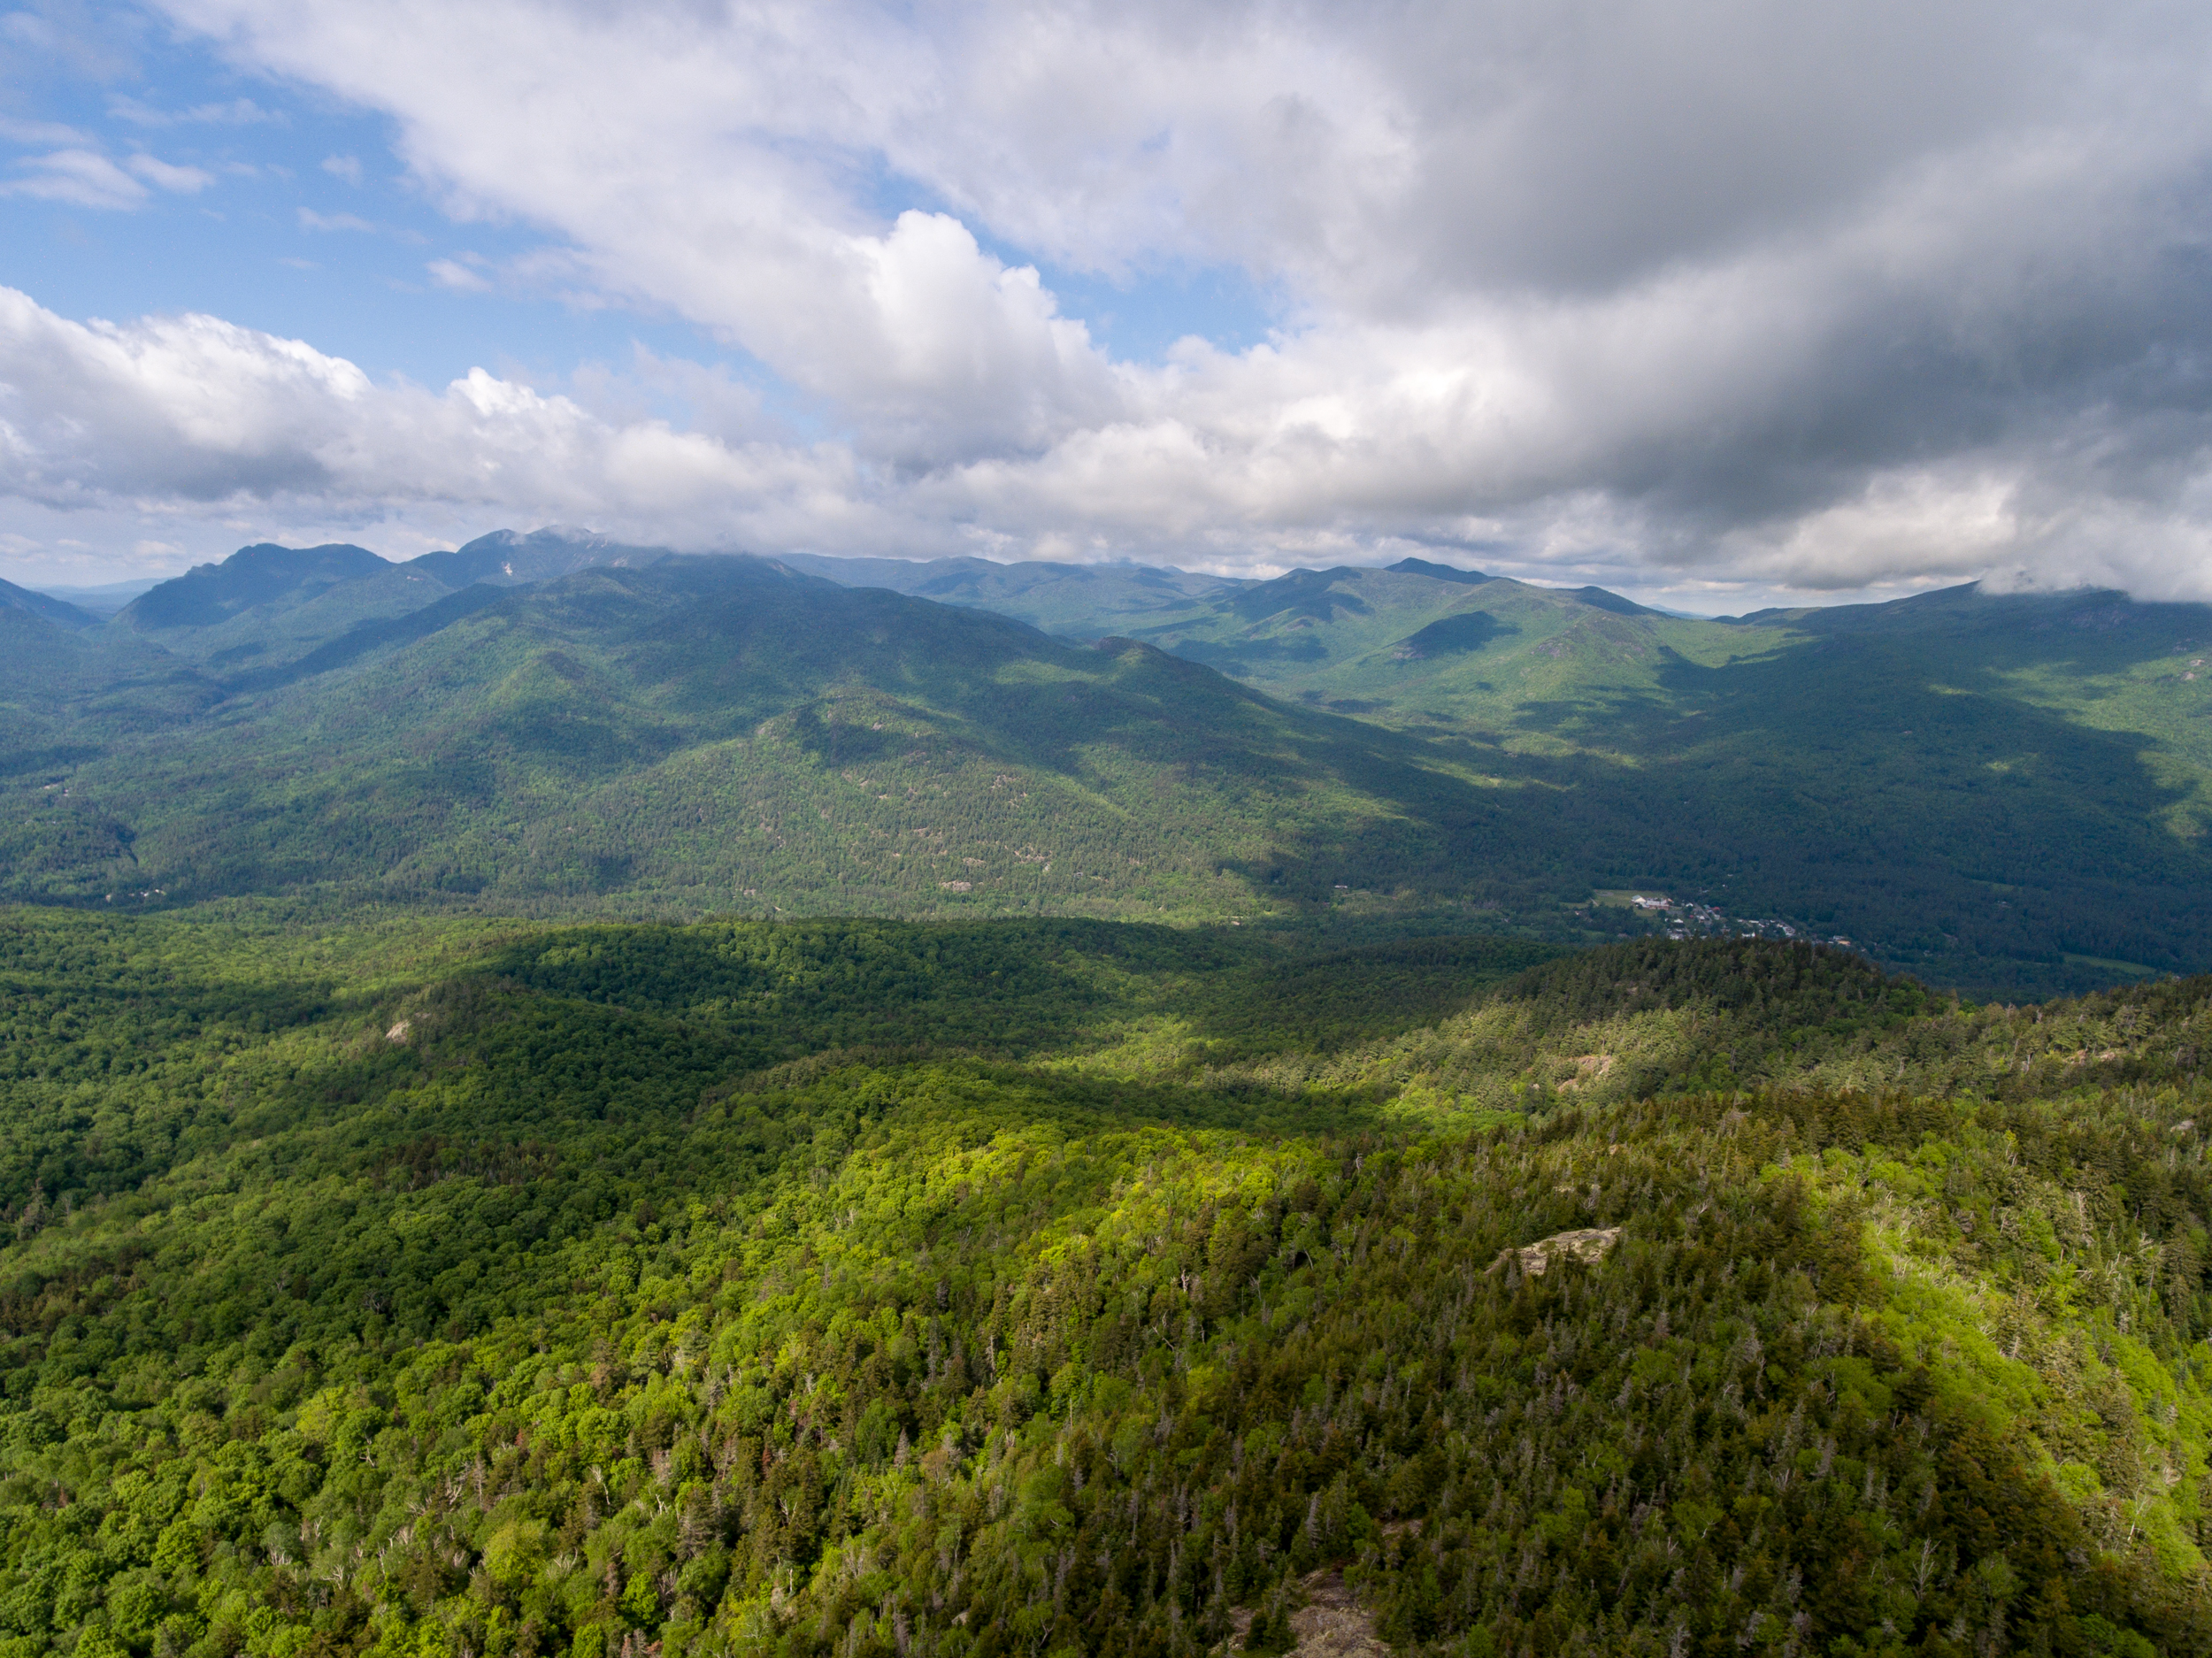 View of the Adirondacks from Hopkins Mountain.